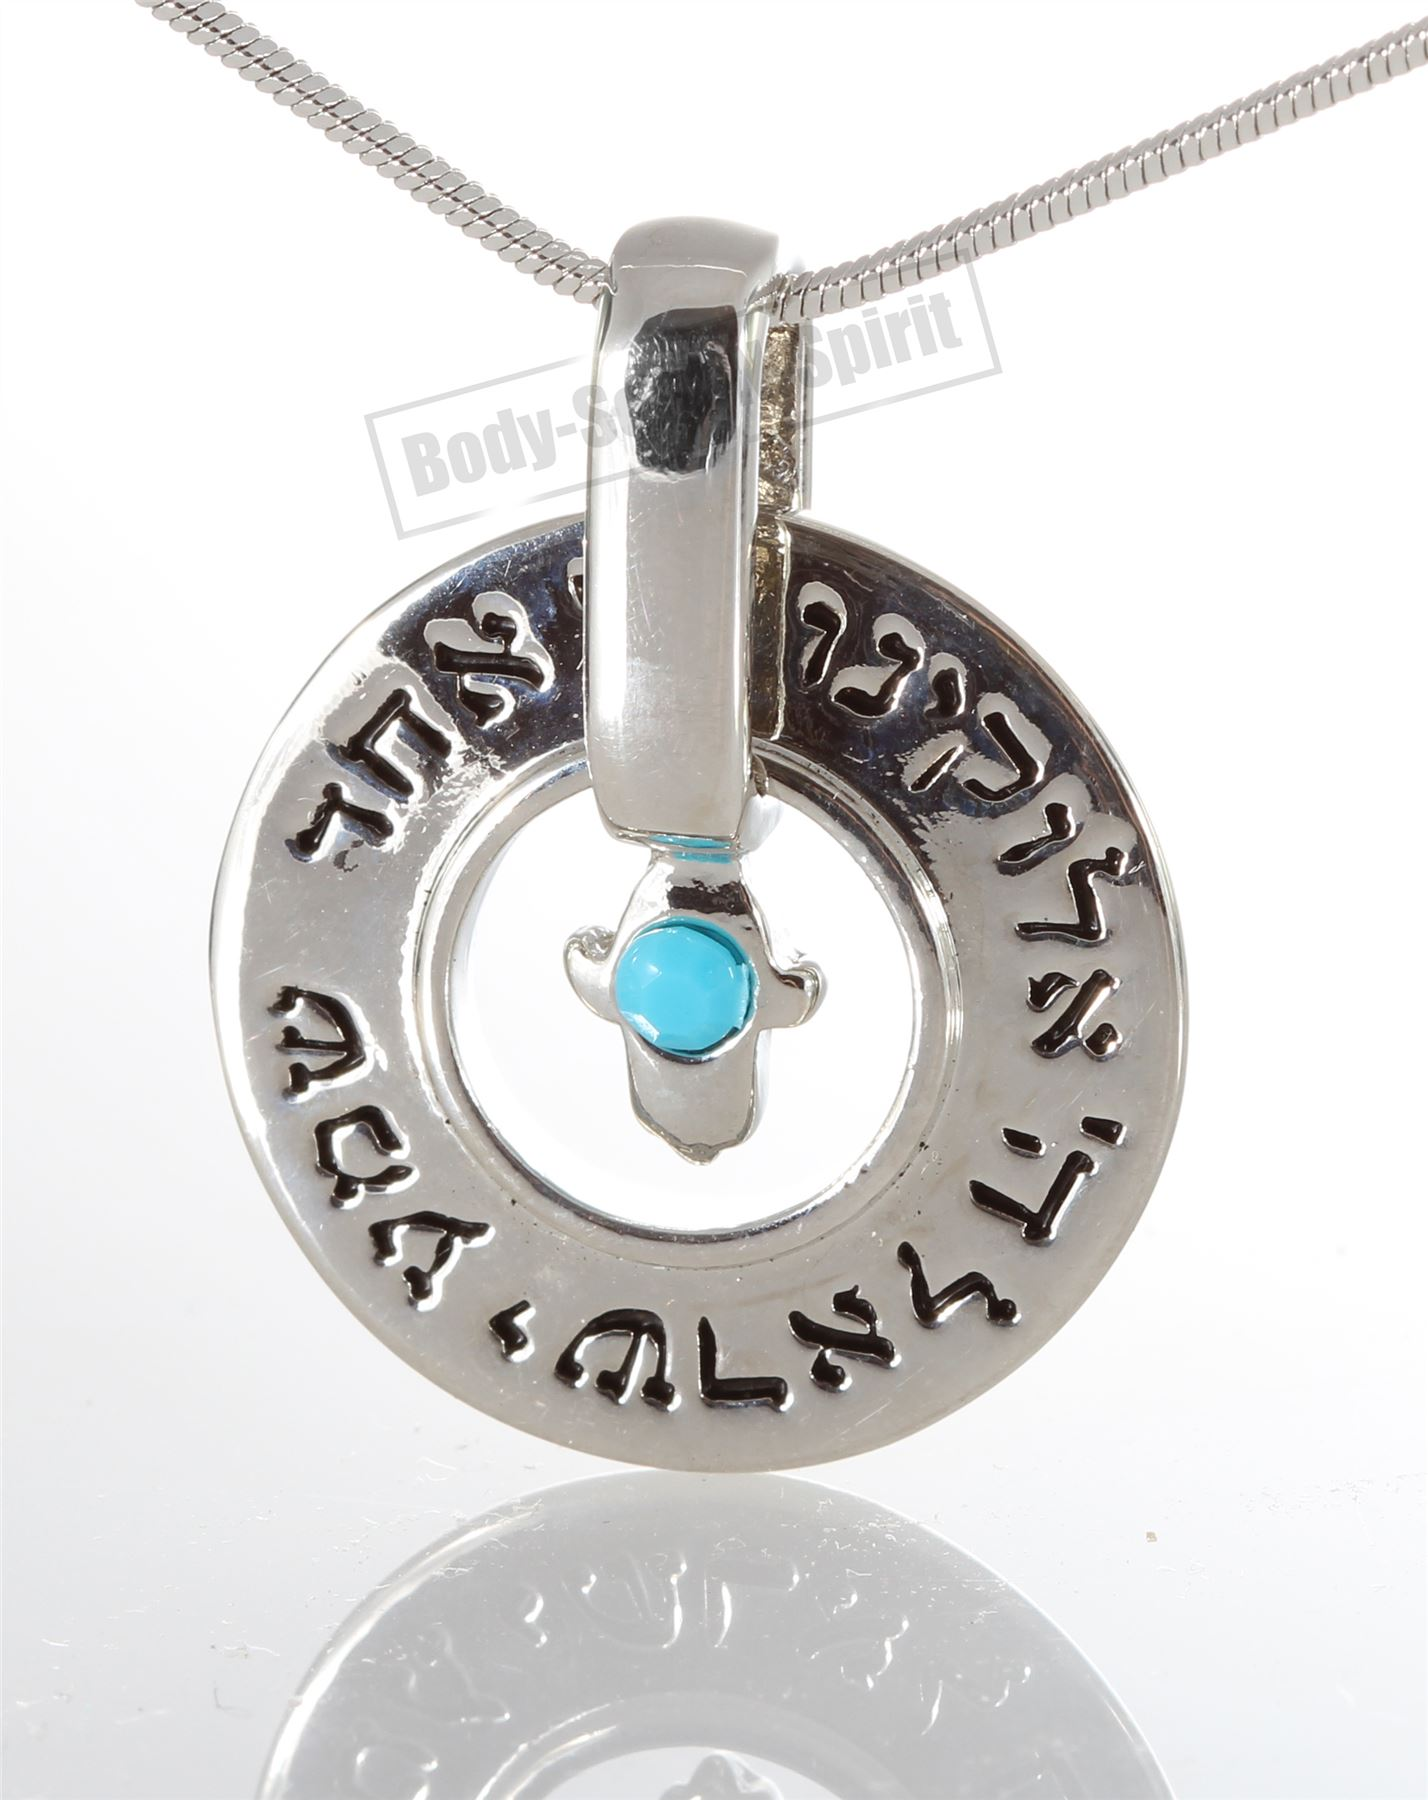 Ring Pendant Silver Plated Necklace Lucky Charm Jewish Judaica